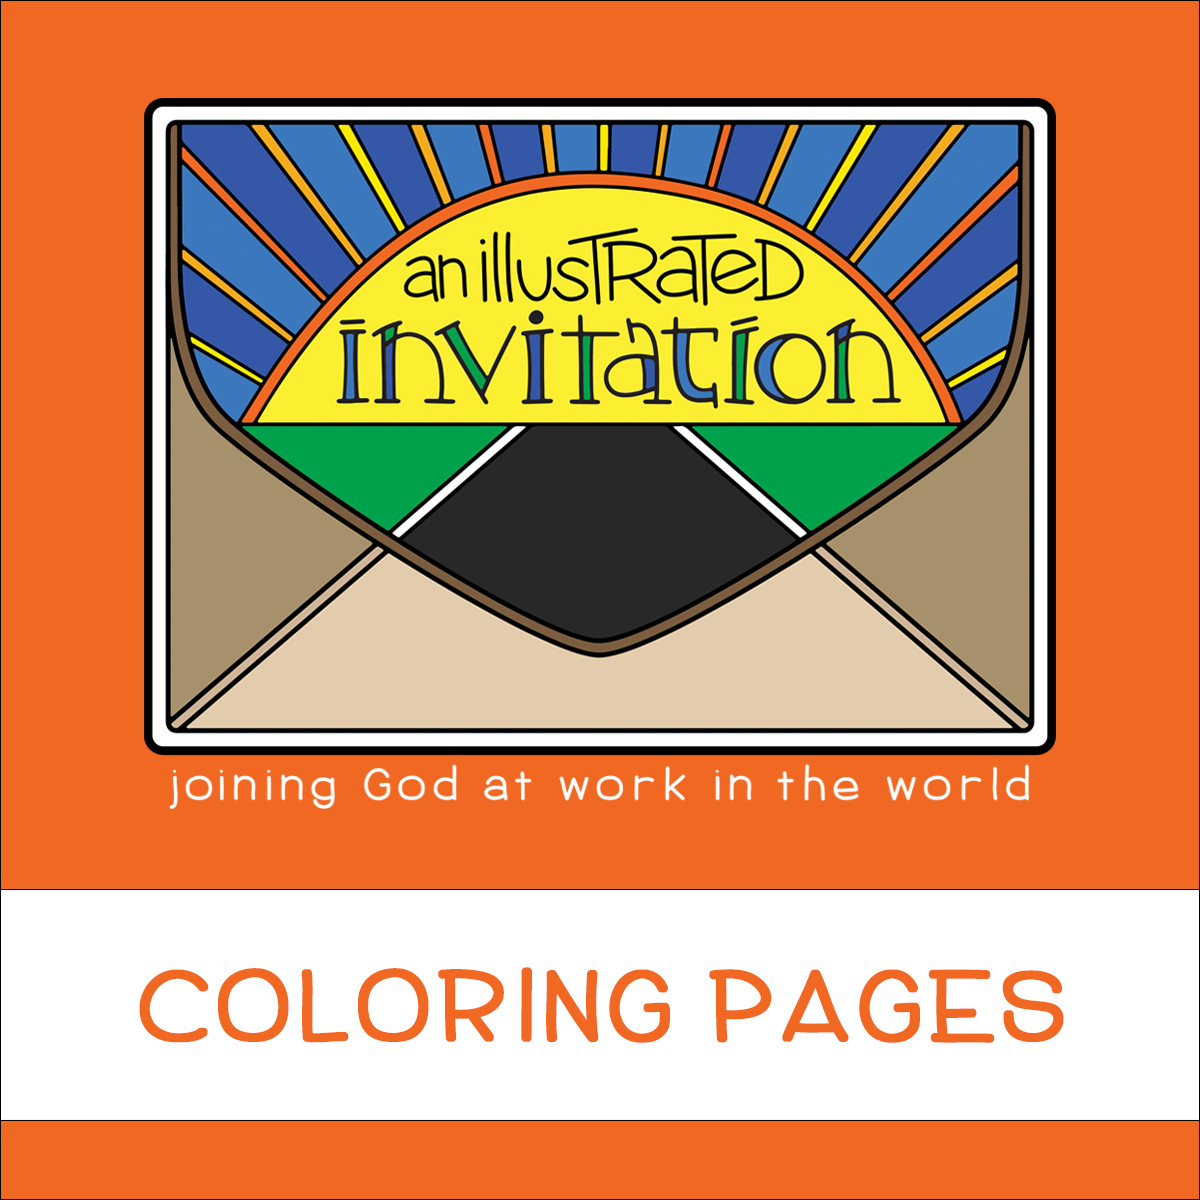 Illustrated Invitation Coloring Pages